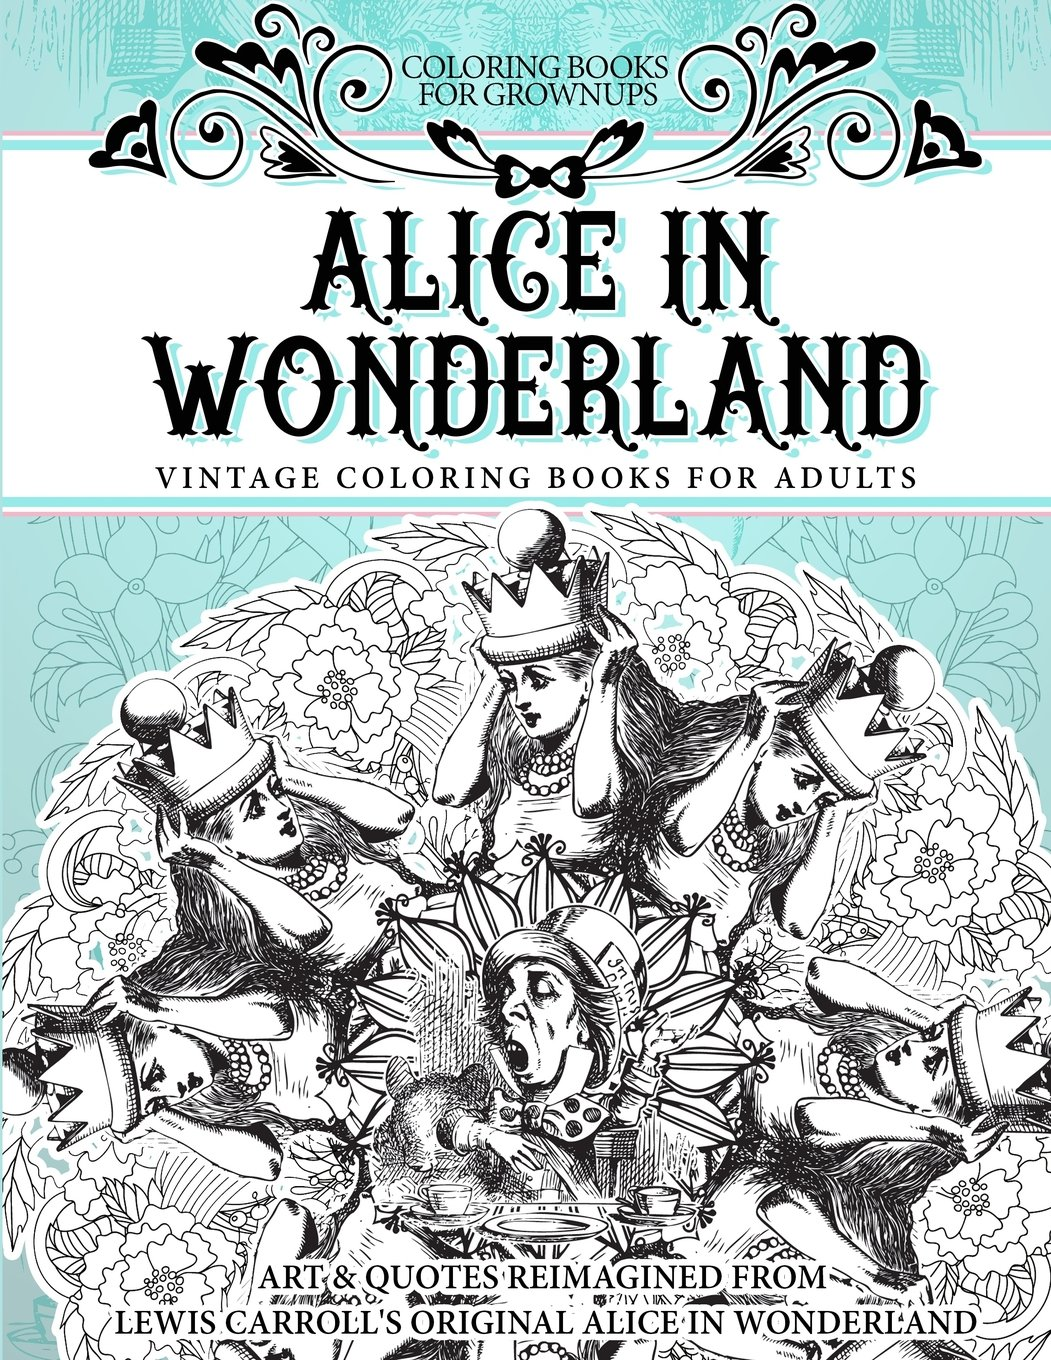 amazoncom coloring books for grownups alice in wonderland vintage coloring books for adults art quotes reimagined from lewis carrolls original alice